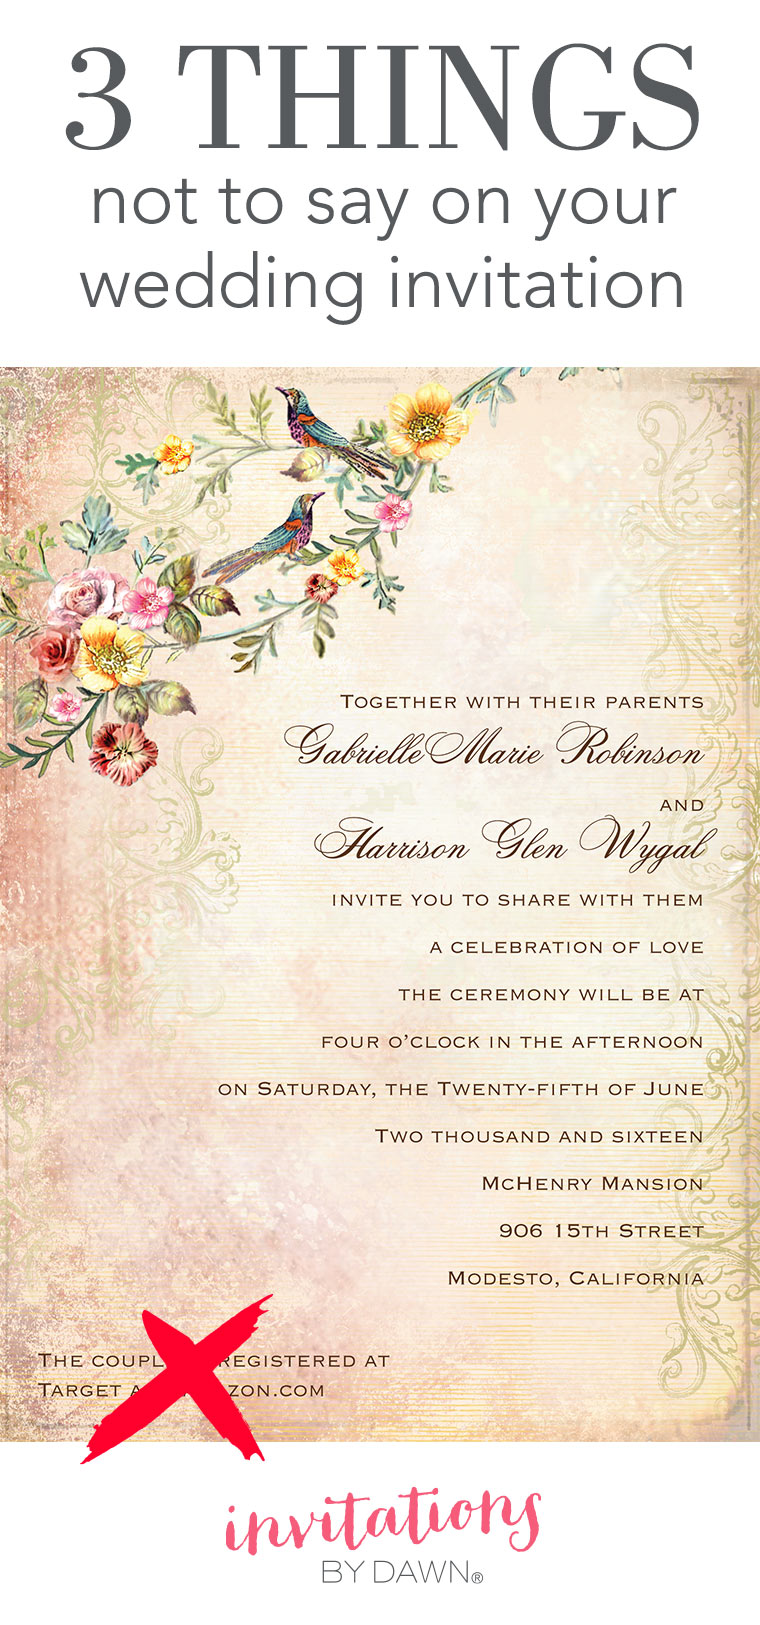 3 Things Not to Say on Your Wedding Invitations | Invitations by Dawn